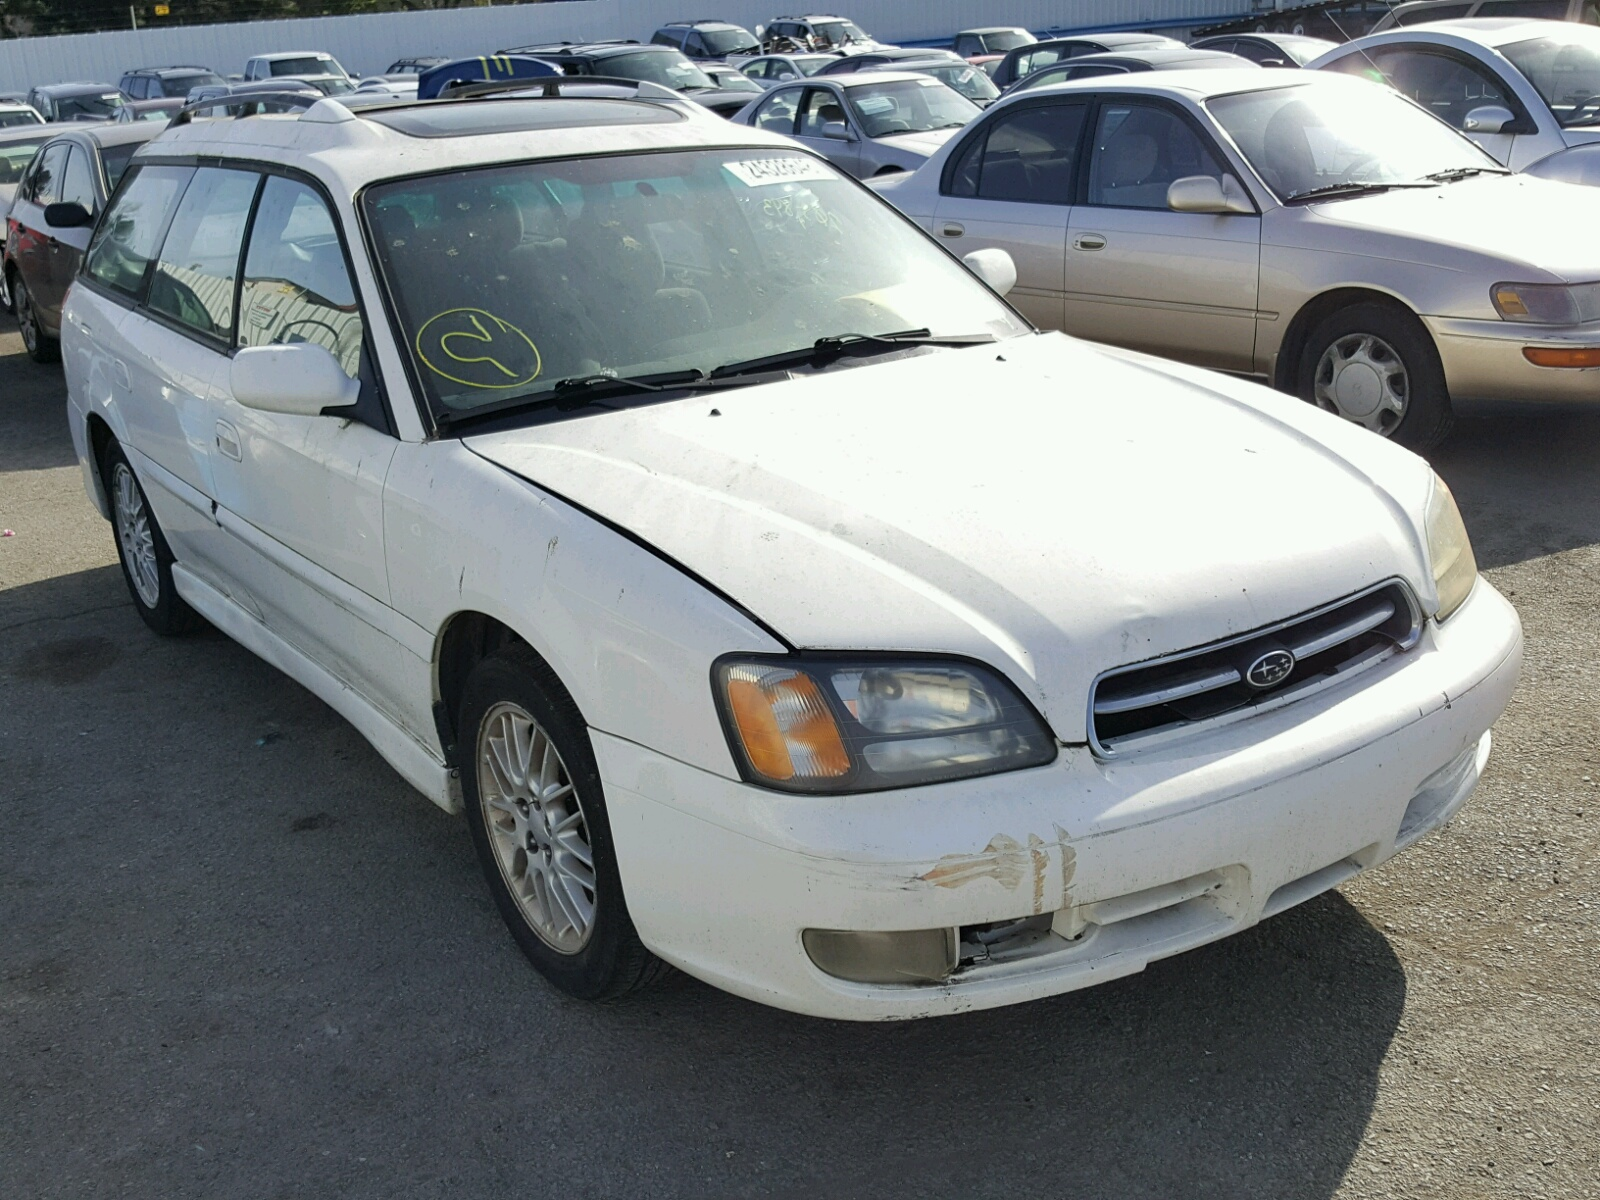 Auto Auction Ended On Vin 4s4bsaccxh3218404 2017 Subaru Outback In 2000 Legacy Gt 25l